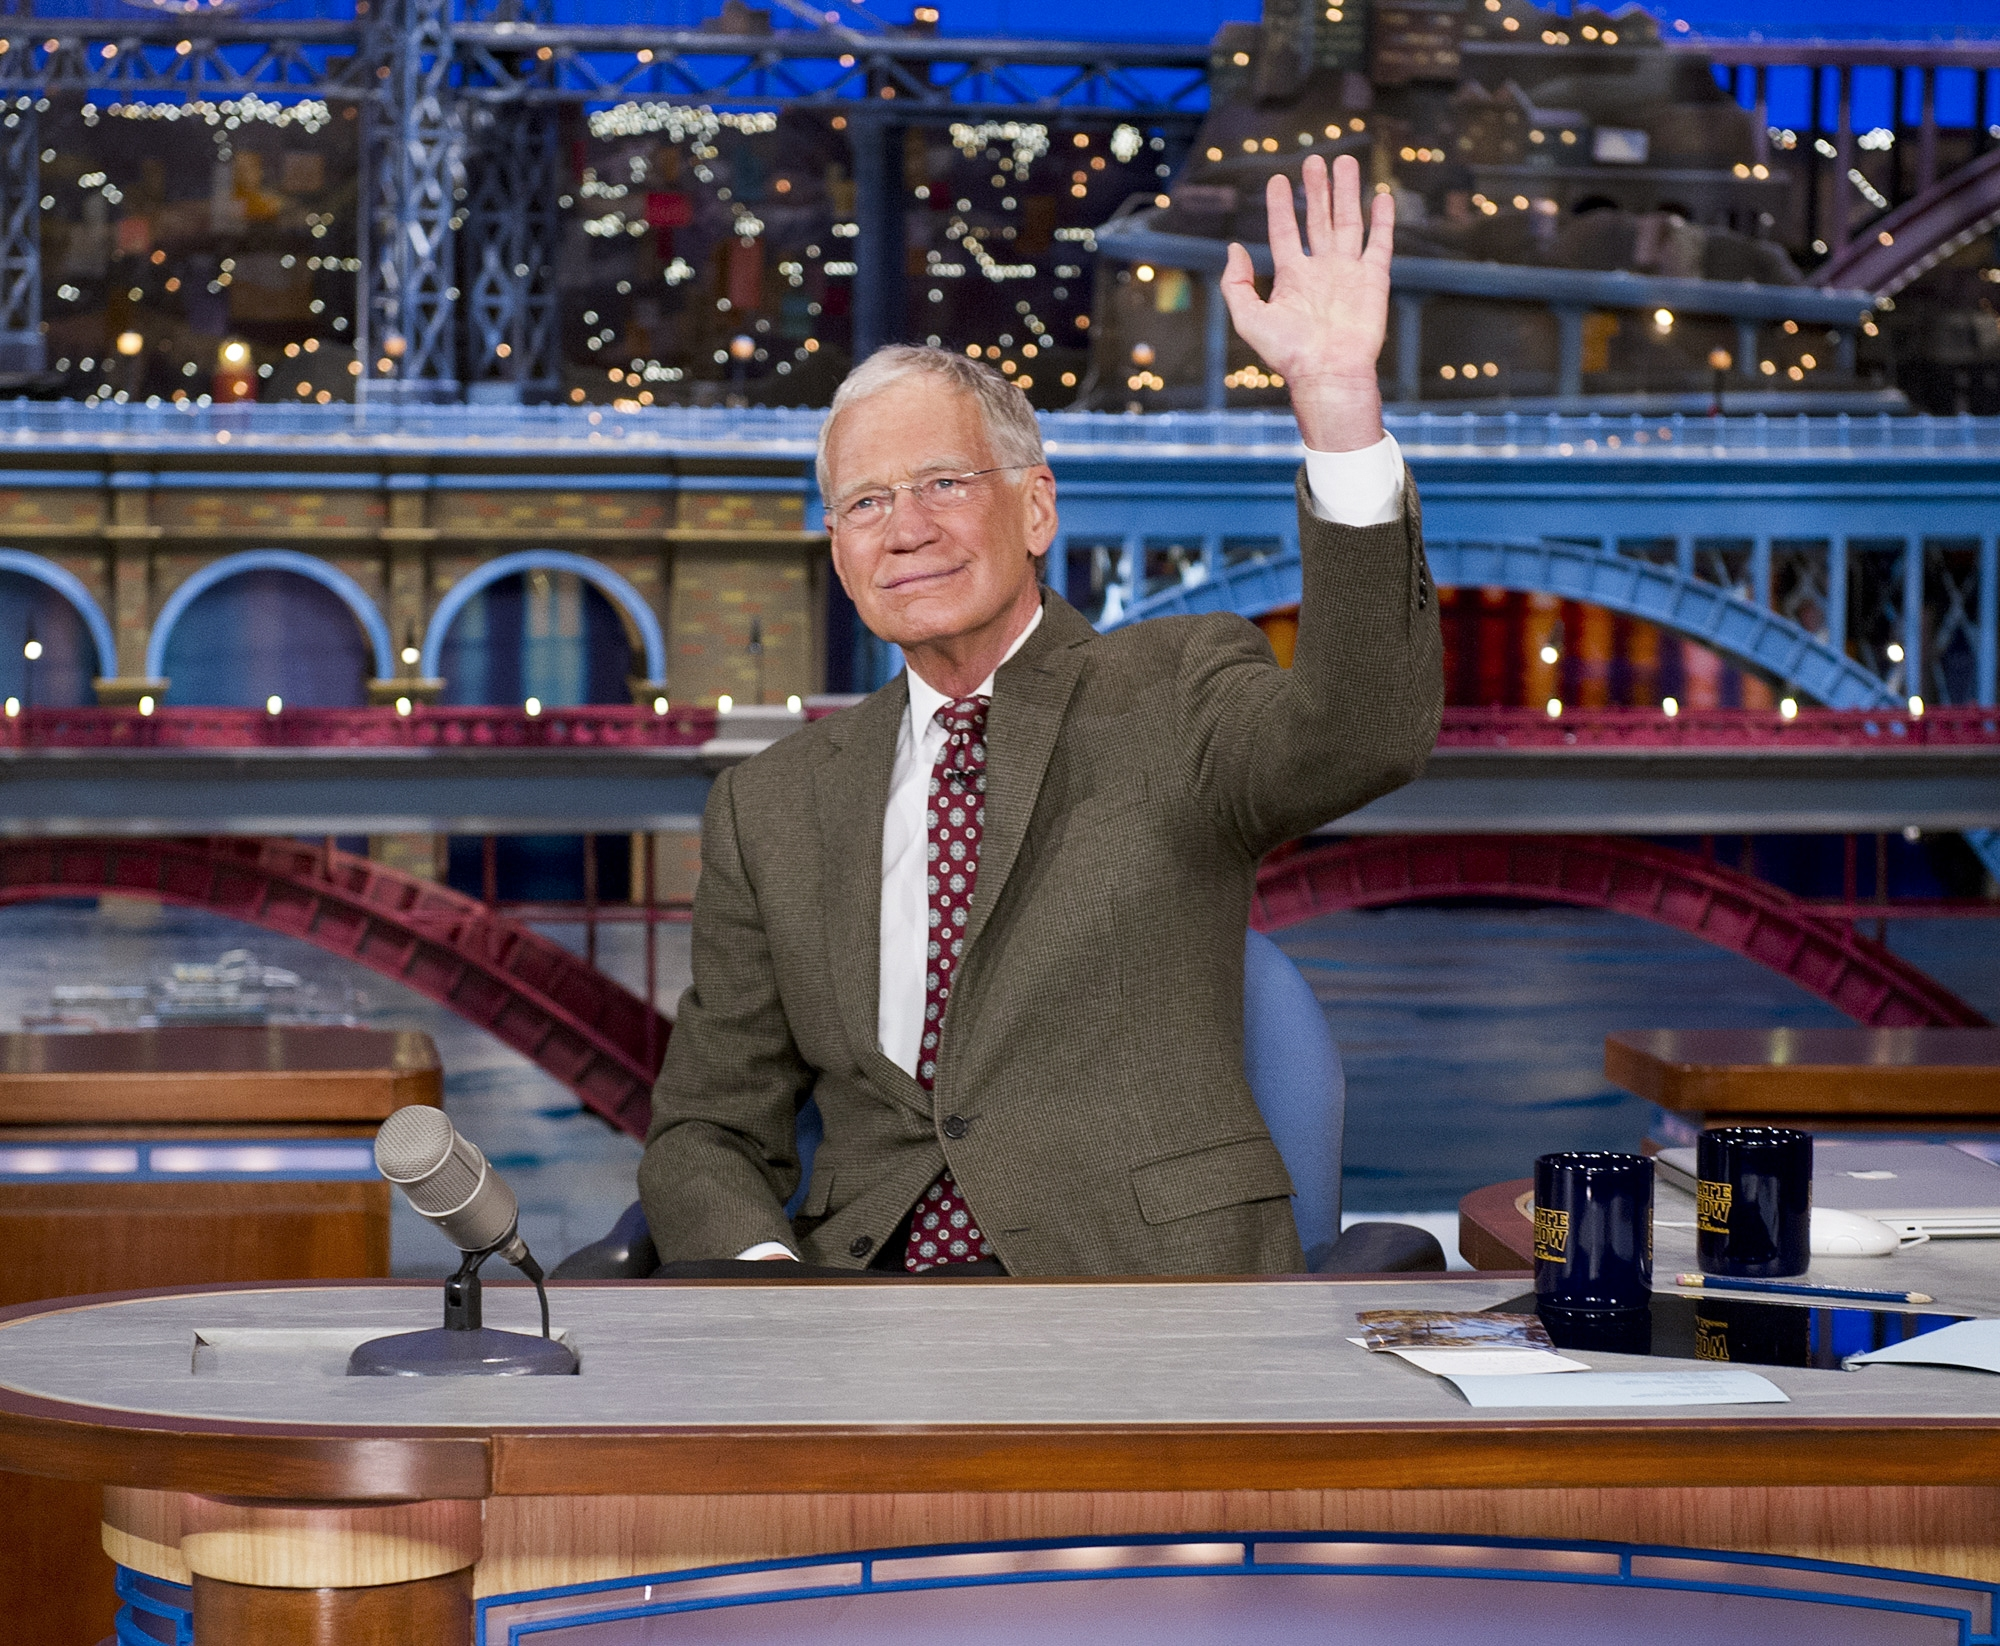 """David Letterman waves to his audience after announcing that he intends to retire in 2015, in New York, April 3, 2014. Letterman, the longest-running host in the history of American late-night television, thanked his staff and viewers for supporting """"The Late Show with David Letterman"""" and said the exact timetable of his farewell was yet to be hammered out. (Jeffrey Neira/CBS via The New York Times) — NO SALES; FOR EDITORIAL USE ONLY WITH STORY SLUGGED TV-LETTERMAN-RETIRE. ALL OTHER USE PROHIBITED."""